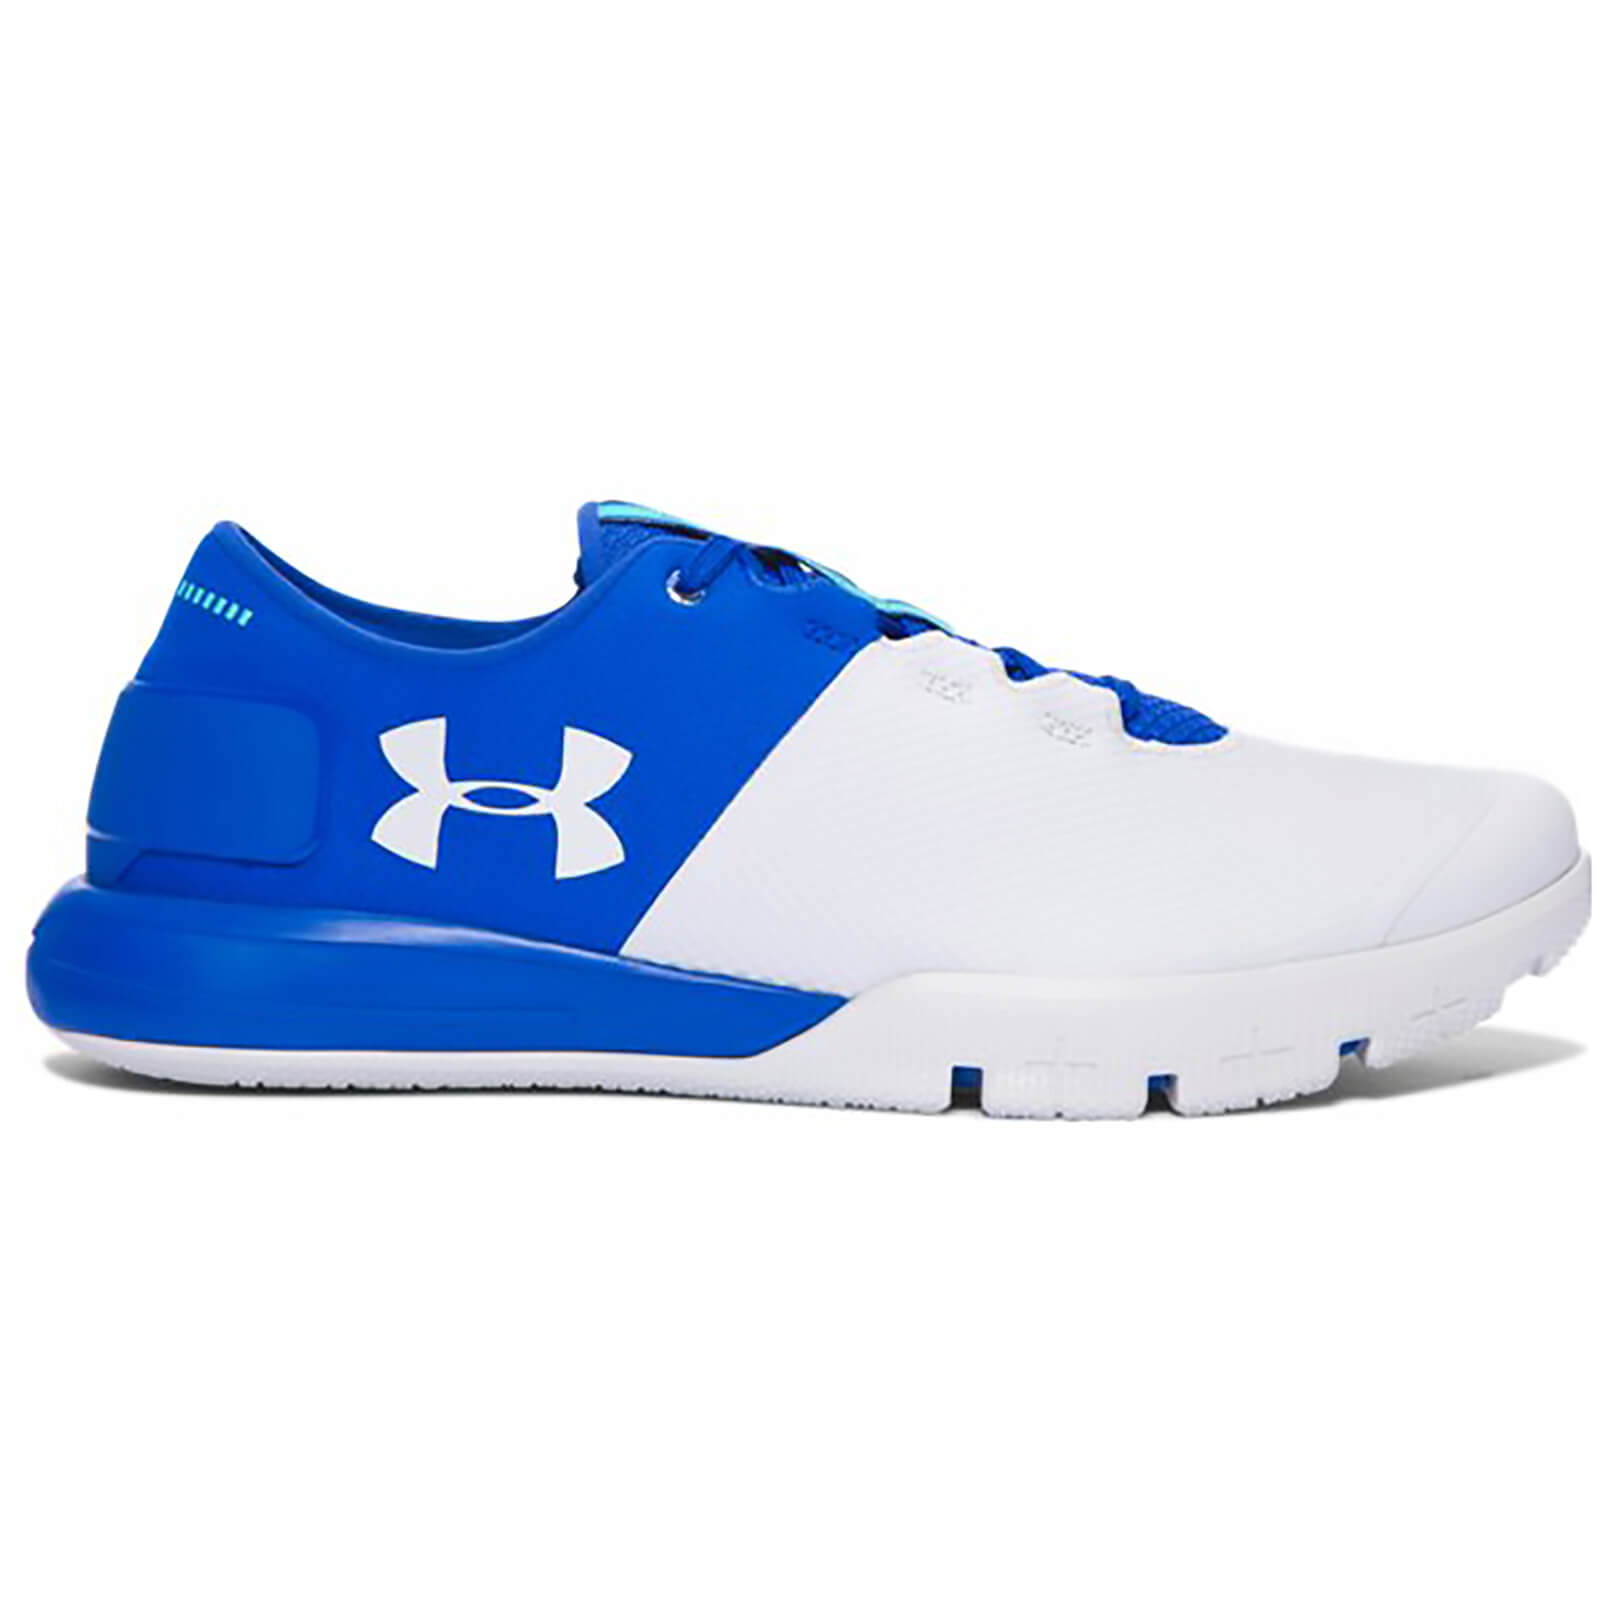 1691f01212 Under Armour Men's Charged Ultimate TR 2.0 Training Shoes - Ultra Blue